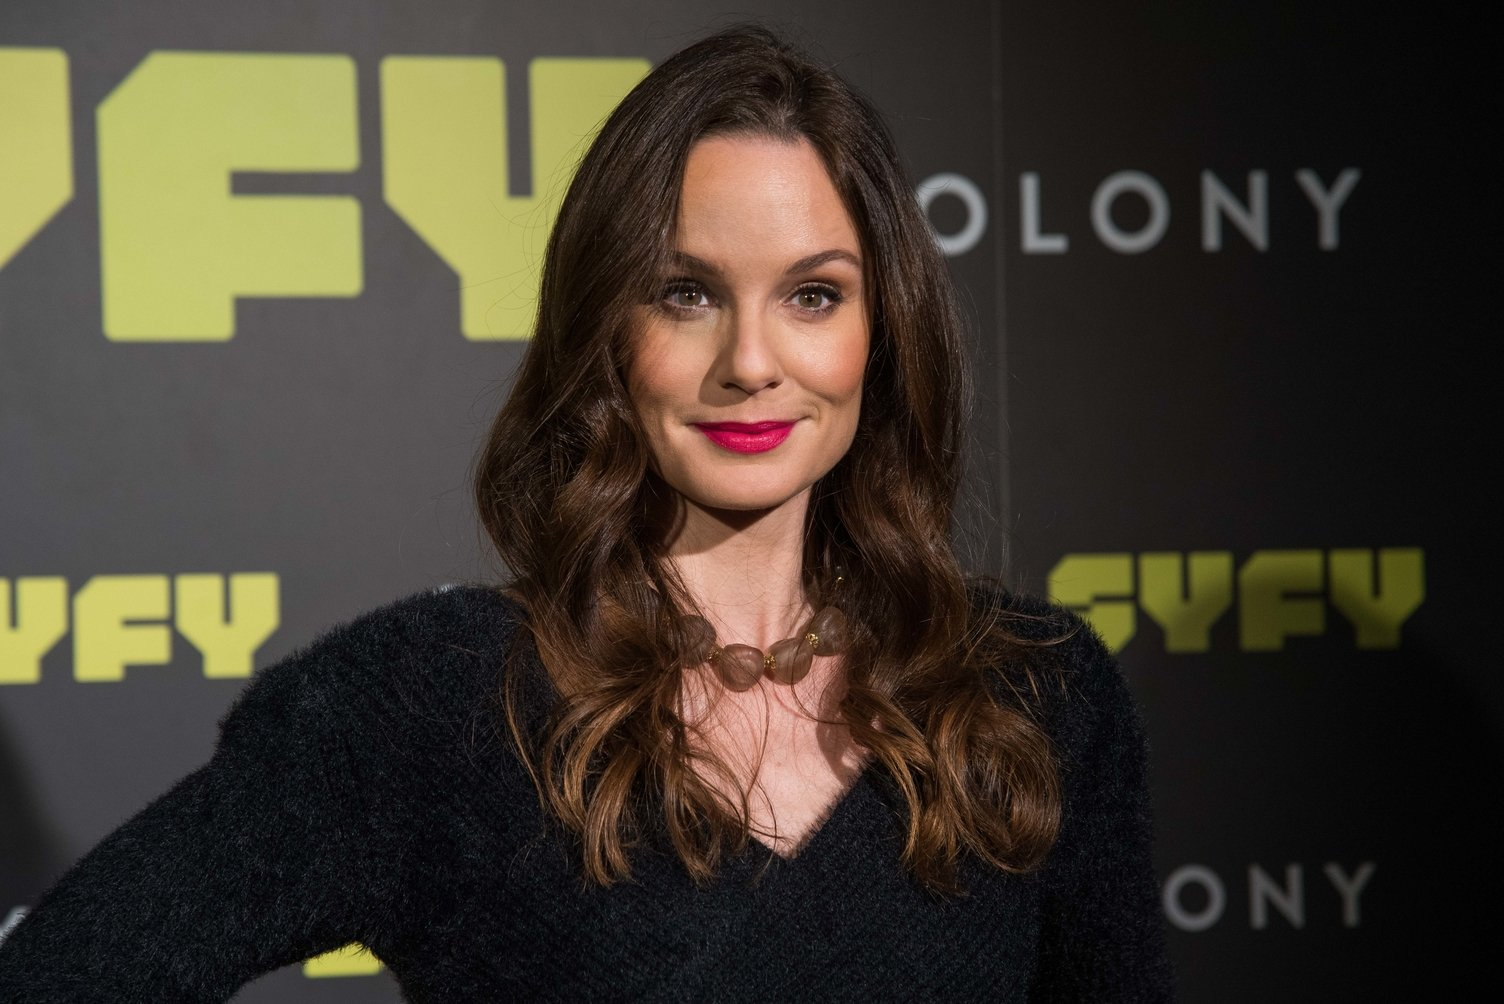 Sarah Wayne Callies attends the 'Colony' Photocall at Santo Mauro Hotel in Madrid on March 8, 2018  | Photo: GettyImages